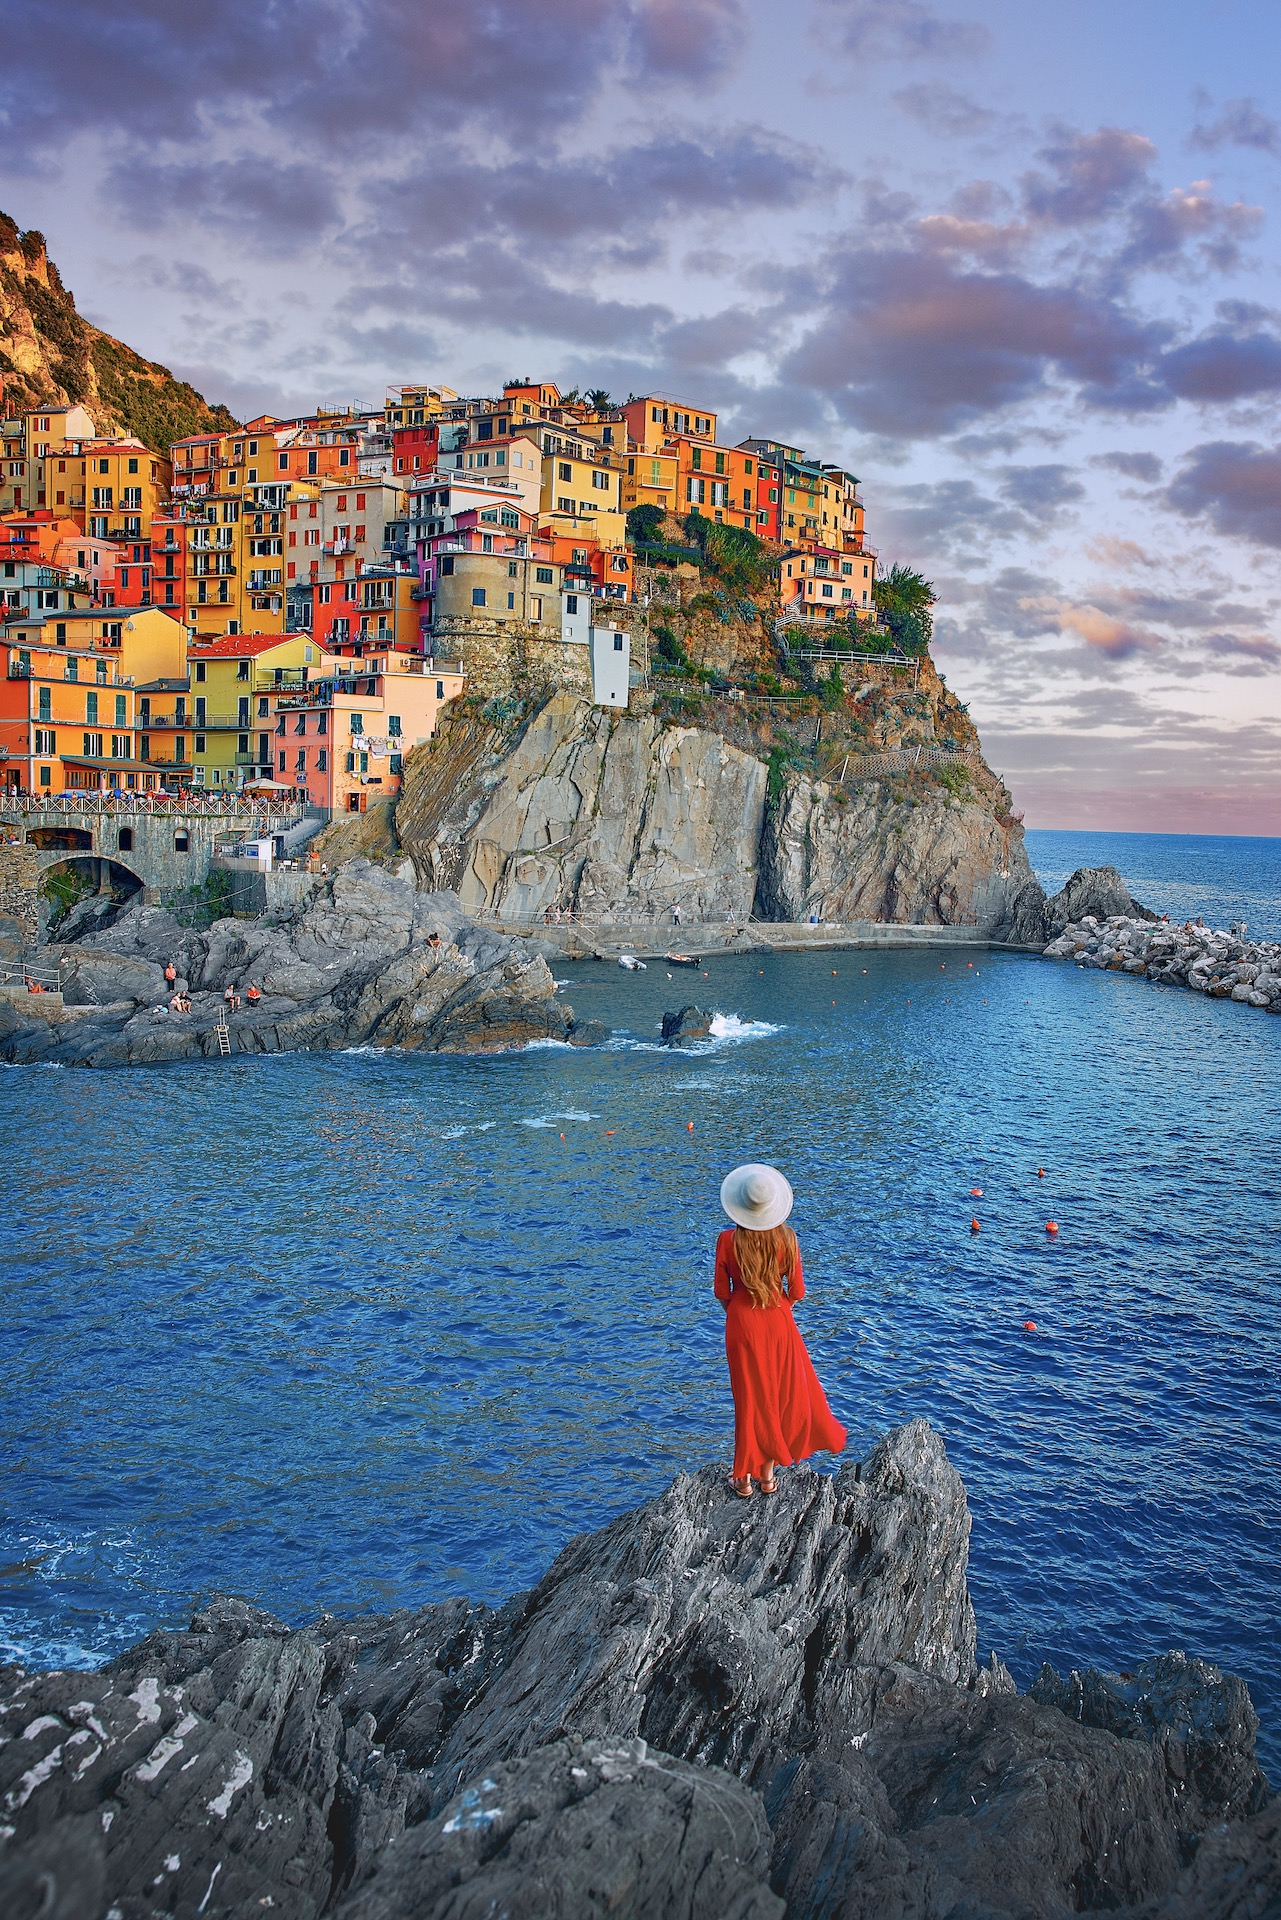 woman standing on the rocks in front of the water and colorful buildings of Cinque Terre